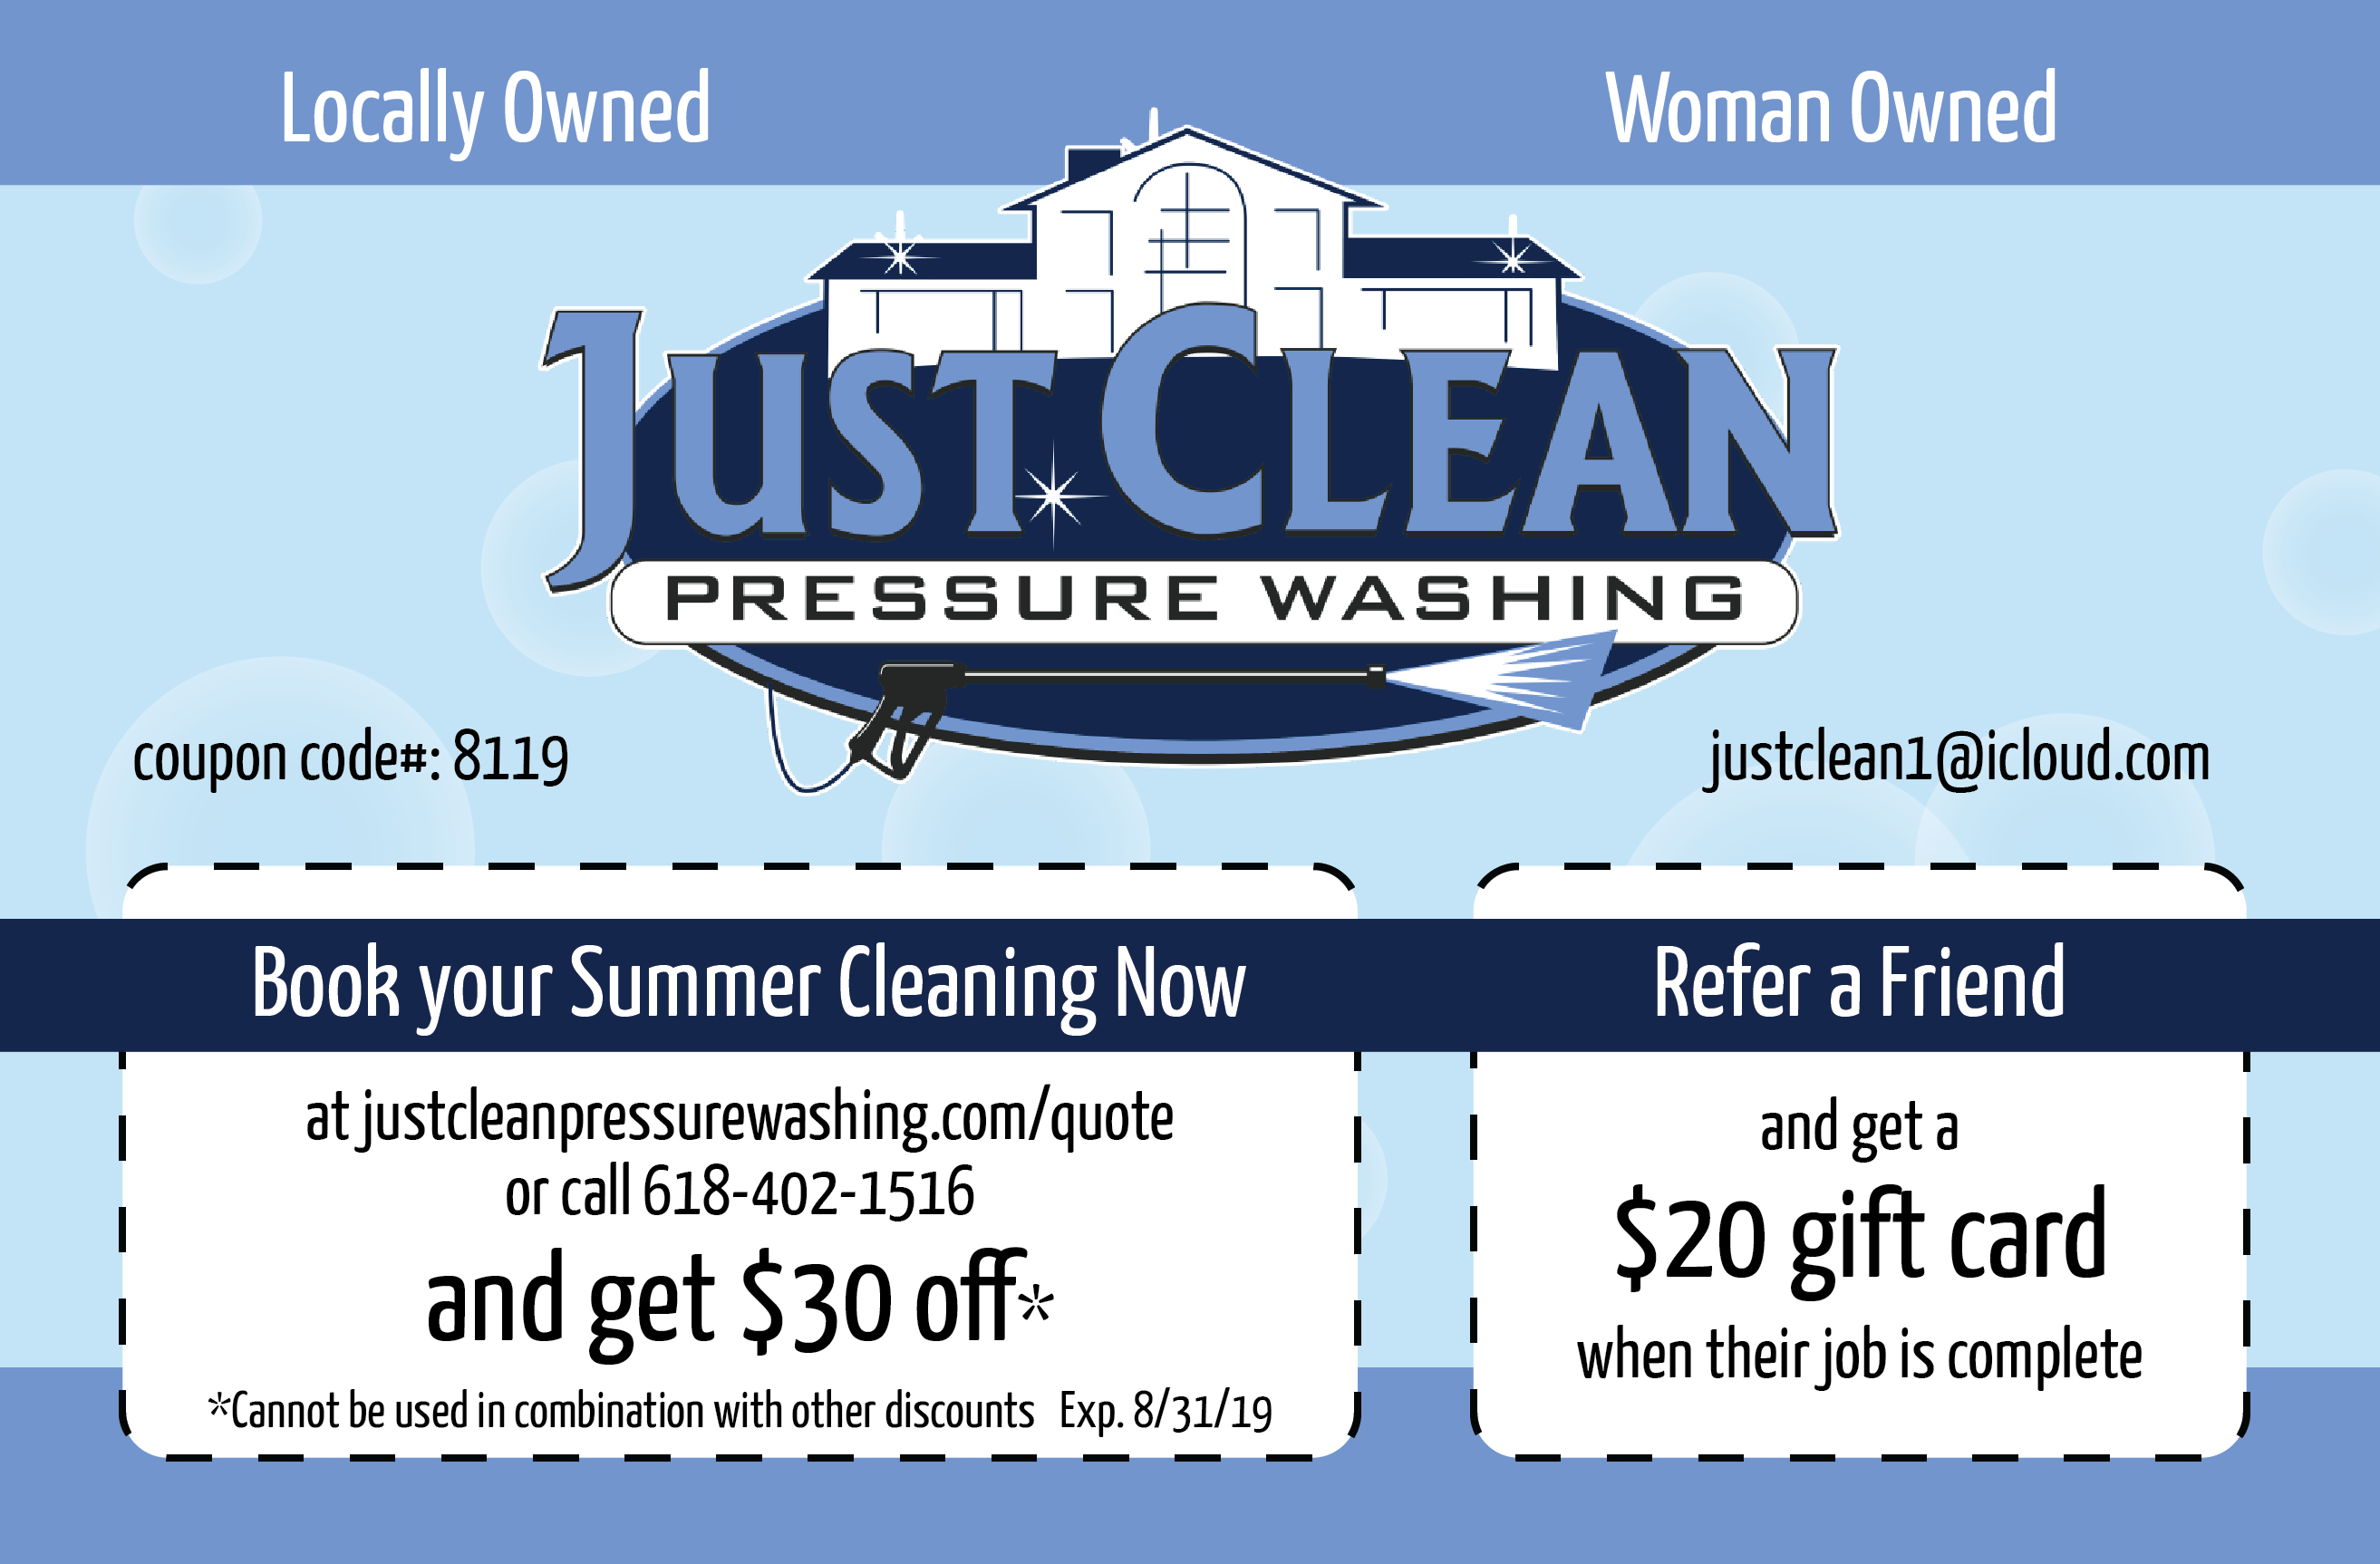 Summer Cleaning Promo for August 2019 from Just Clean Pressure Washing in O'Fallon IL